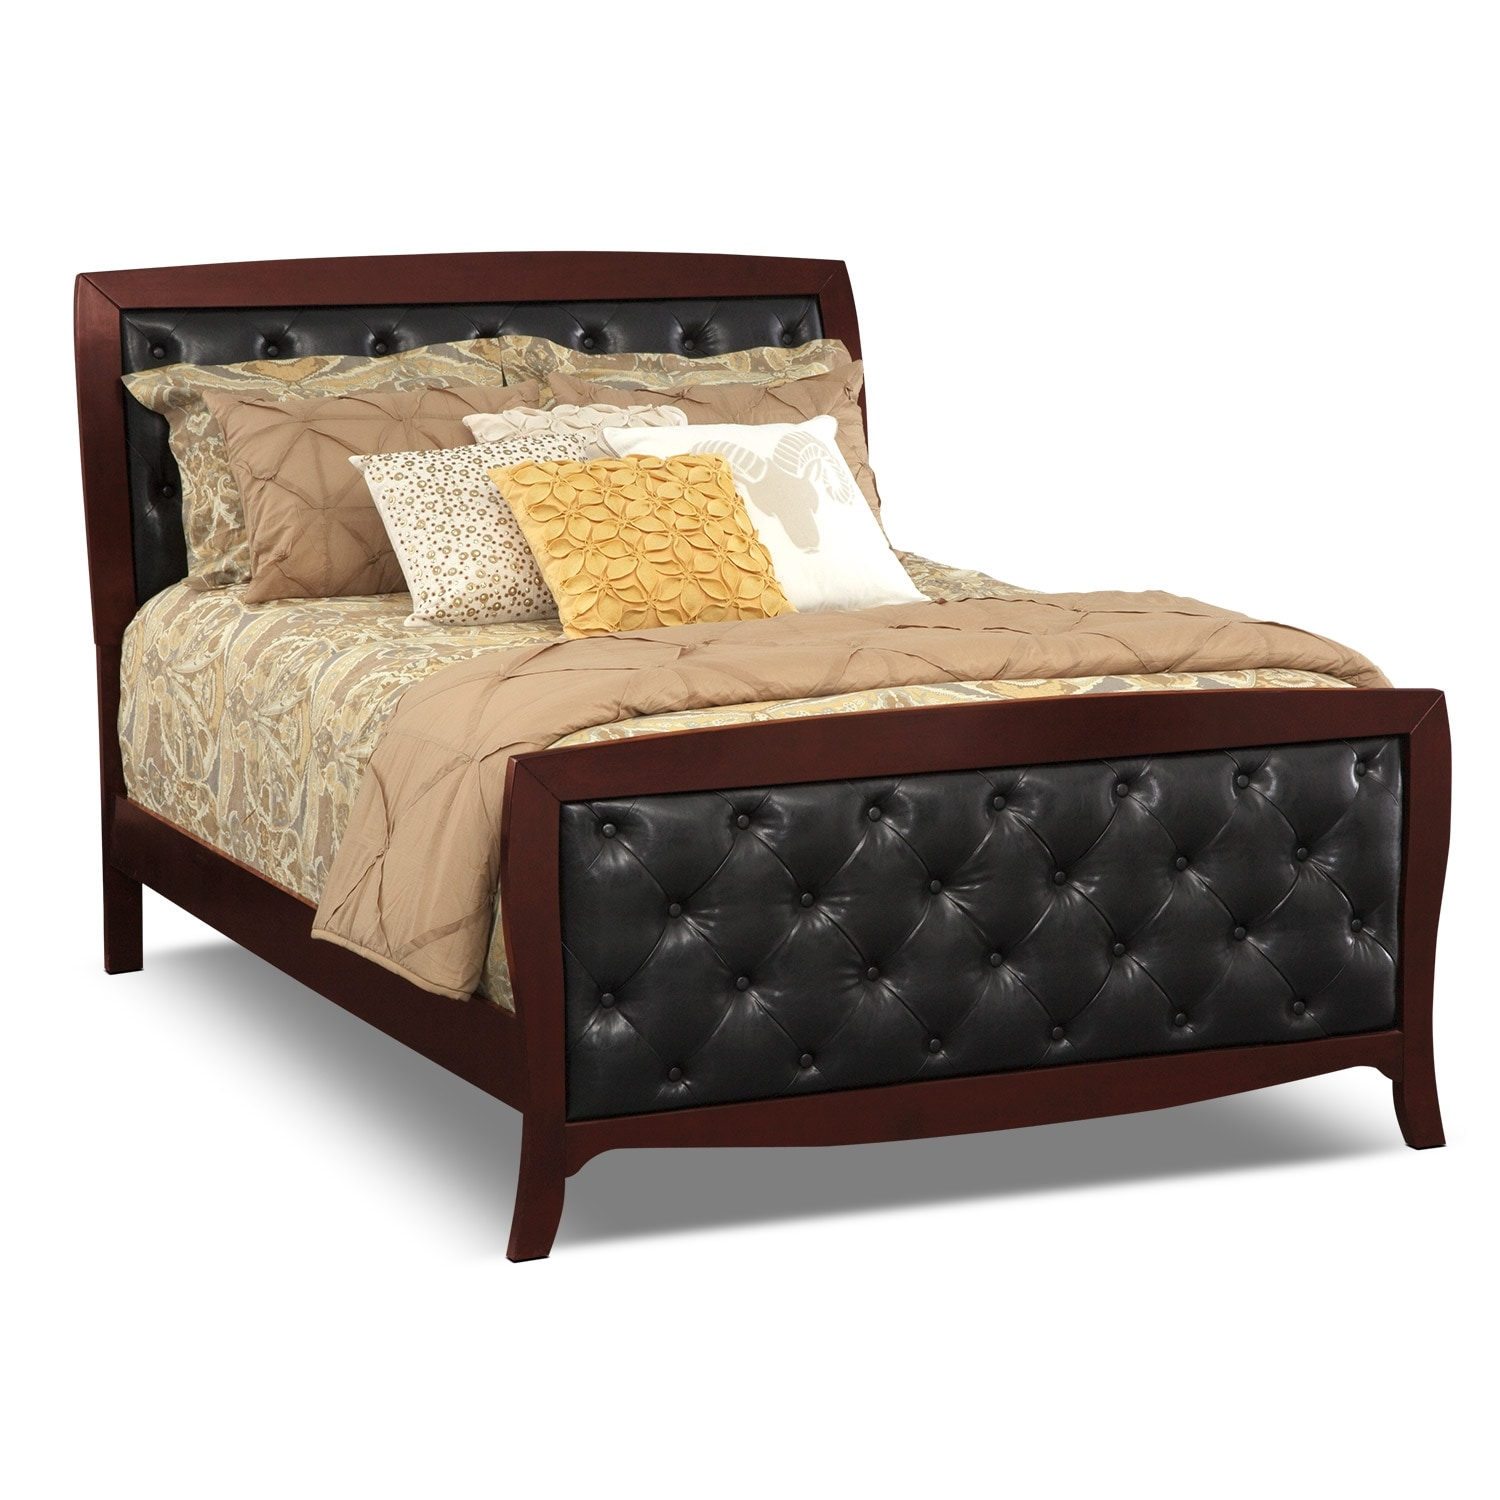 Jaden King Tufted Bed Merlot American Signature Furniture